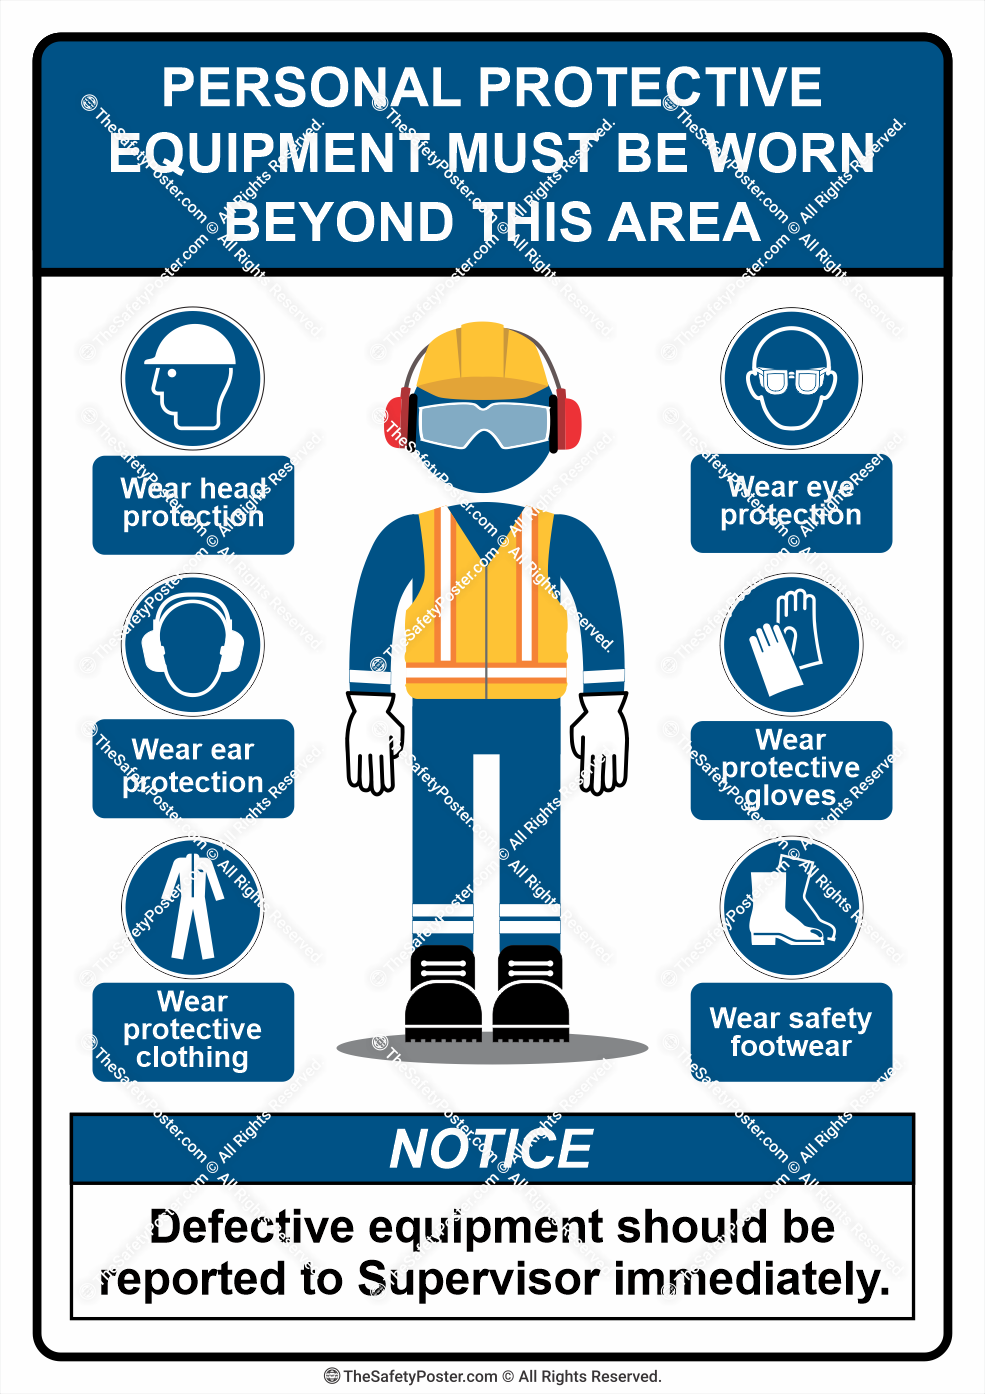 Personal Protective Equipment must be worn beyond this area